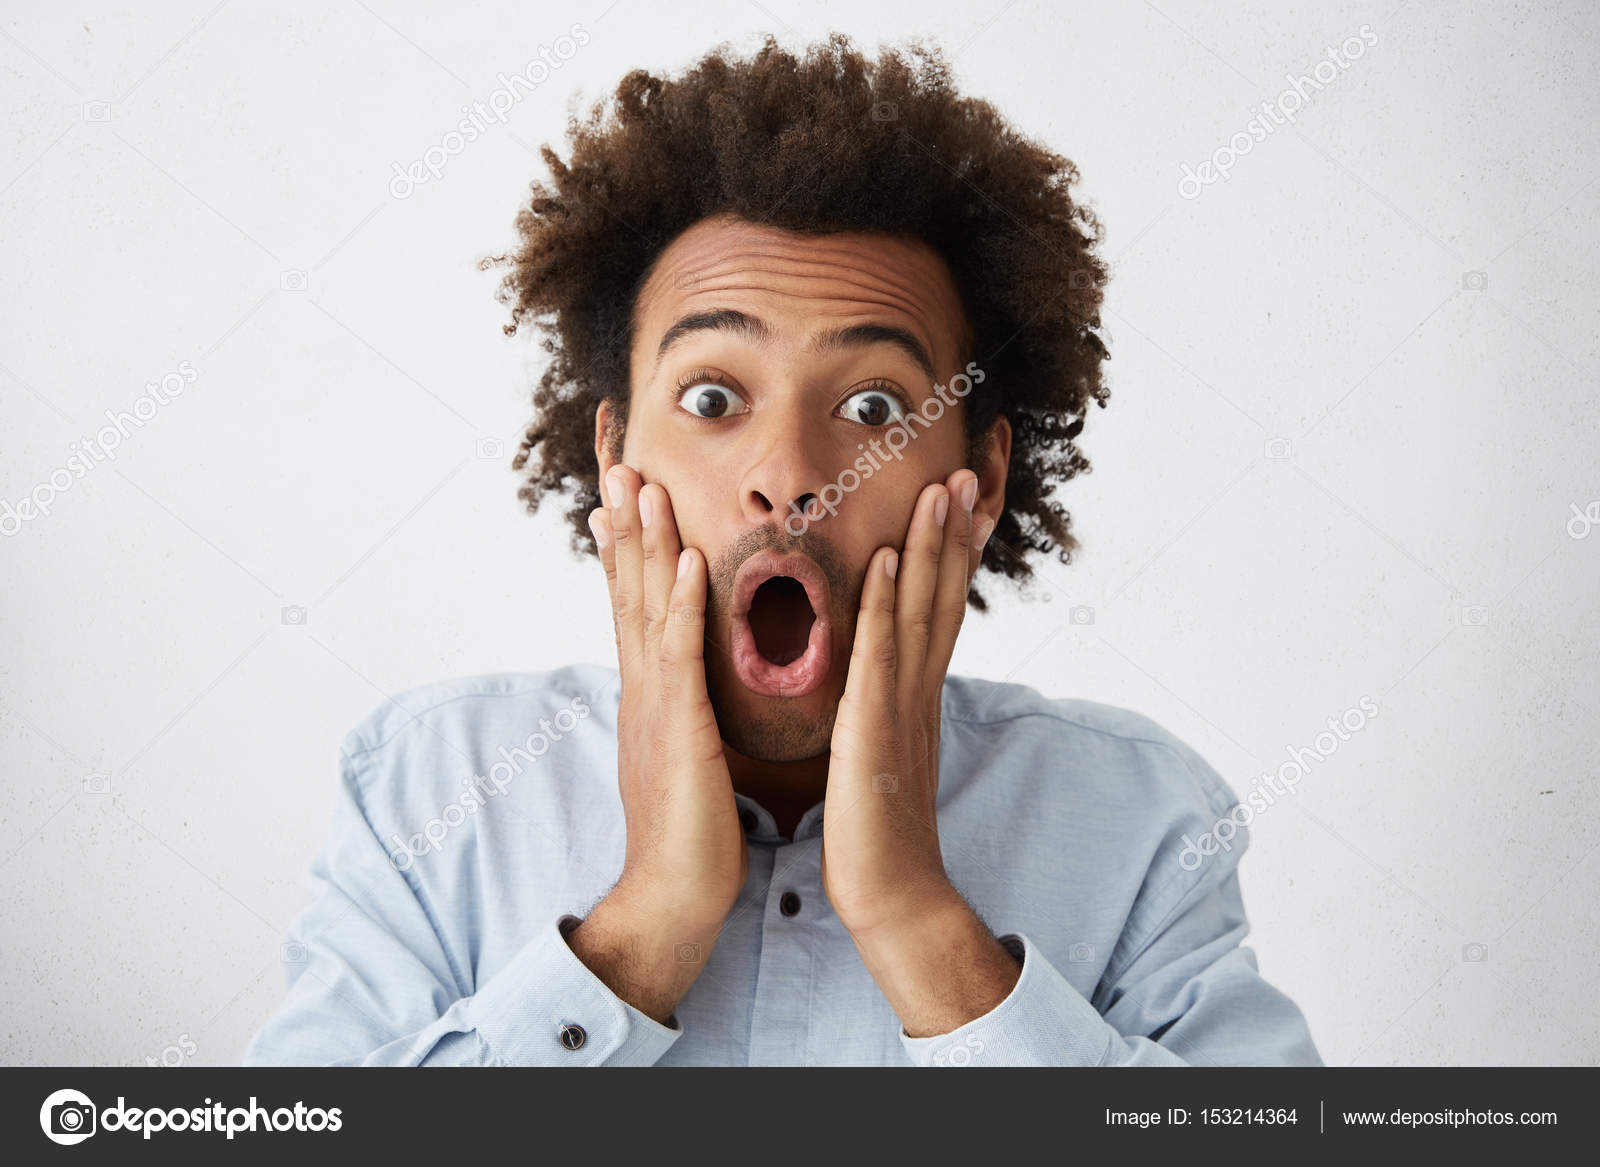 African Male With Funky Hairstyle Screaming Stock Photo Avemario